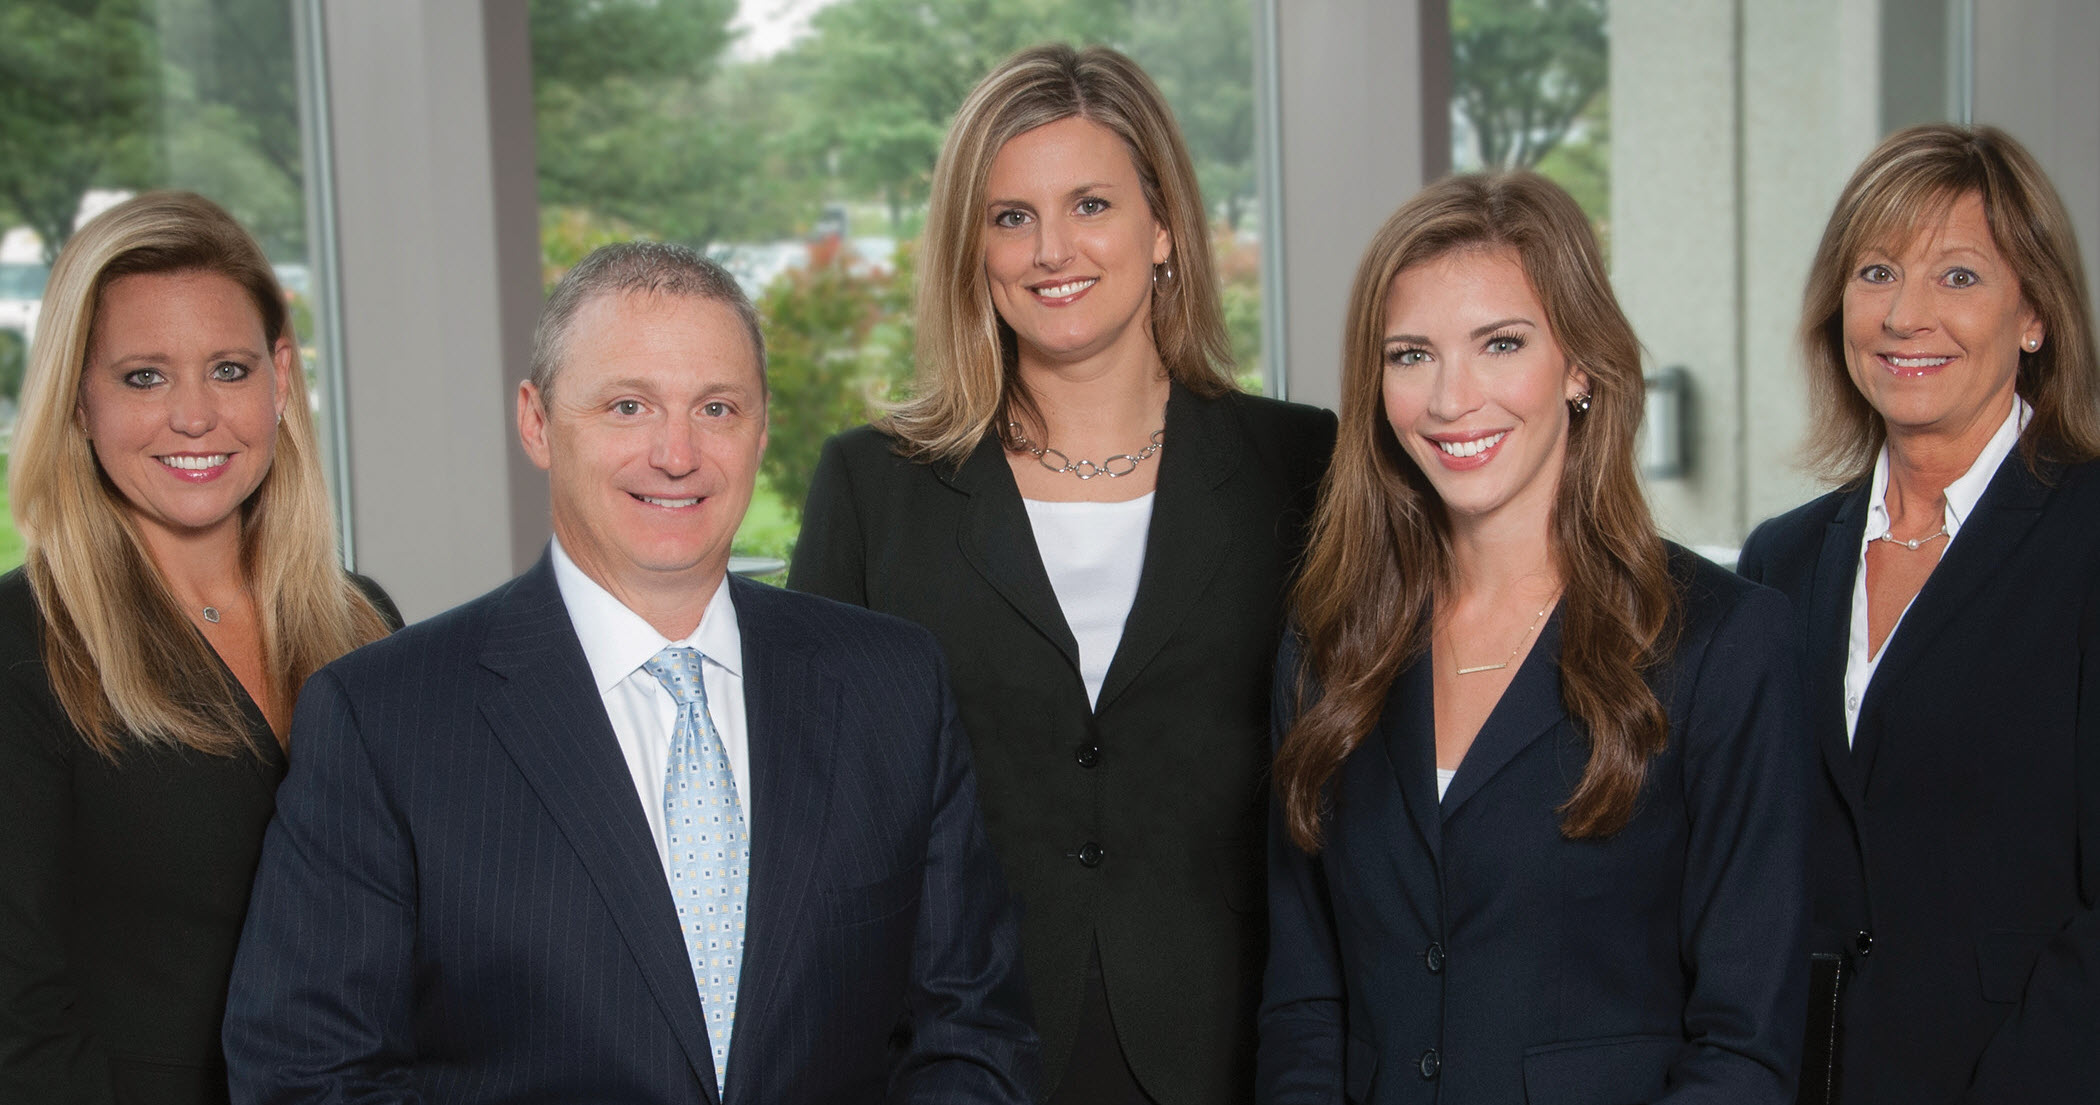 Keystone Wealth Management Group - Meet our team